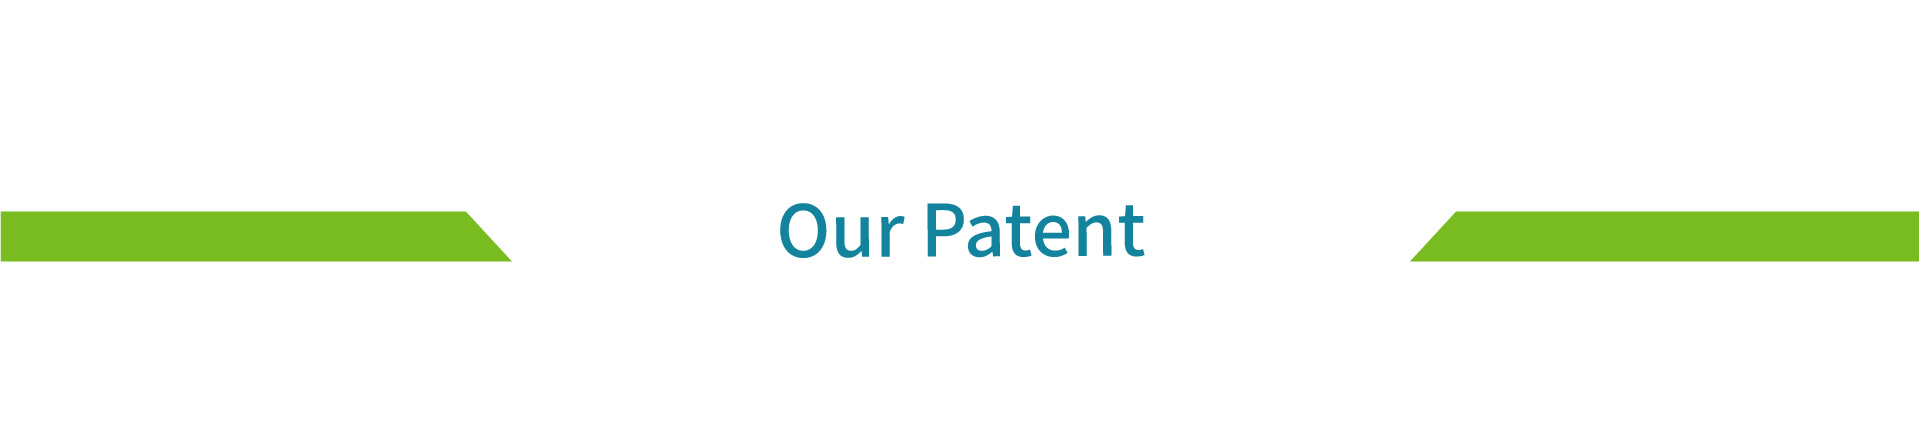 eYc-Our-Patents